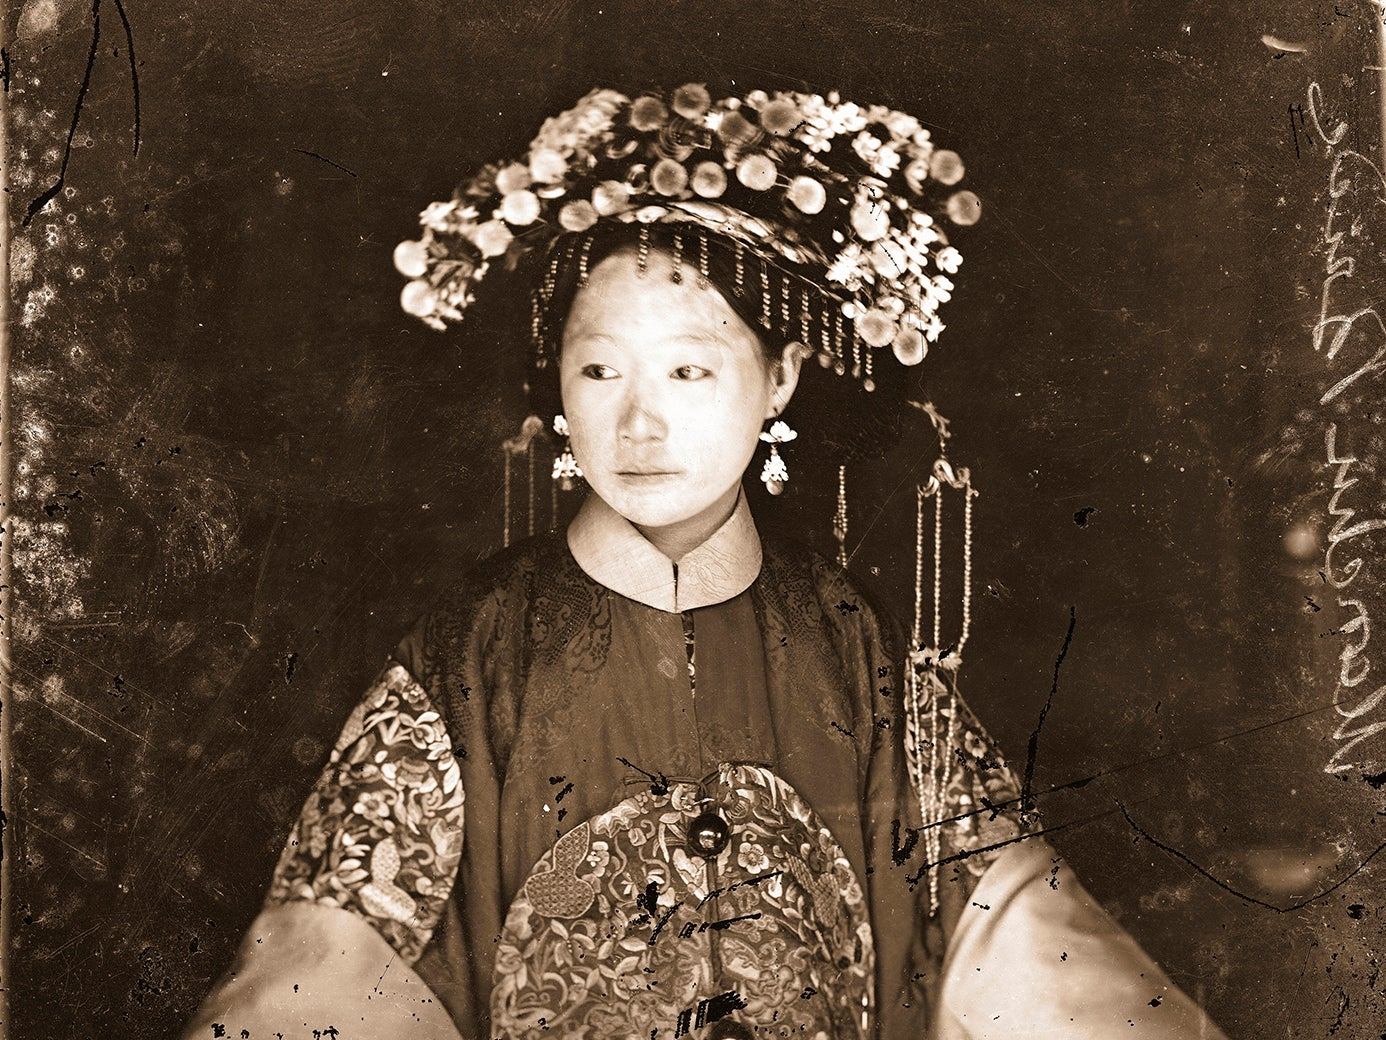 These Wet Plate Portraits Capture Chinese Culture in the 19th Century